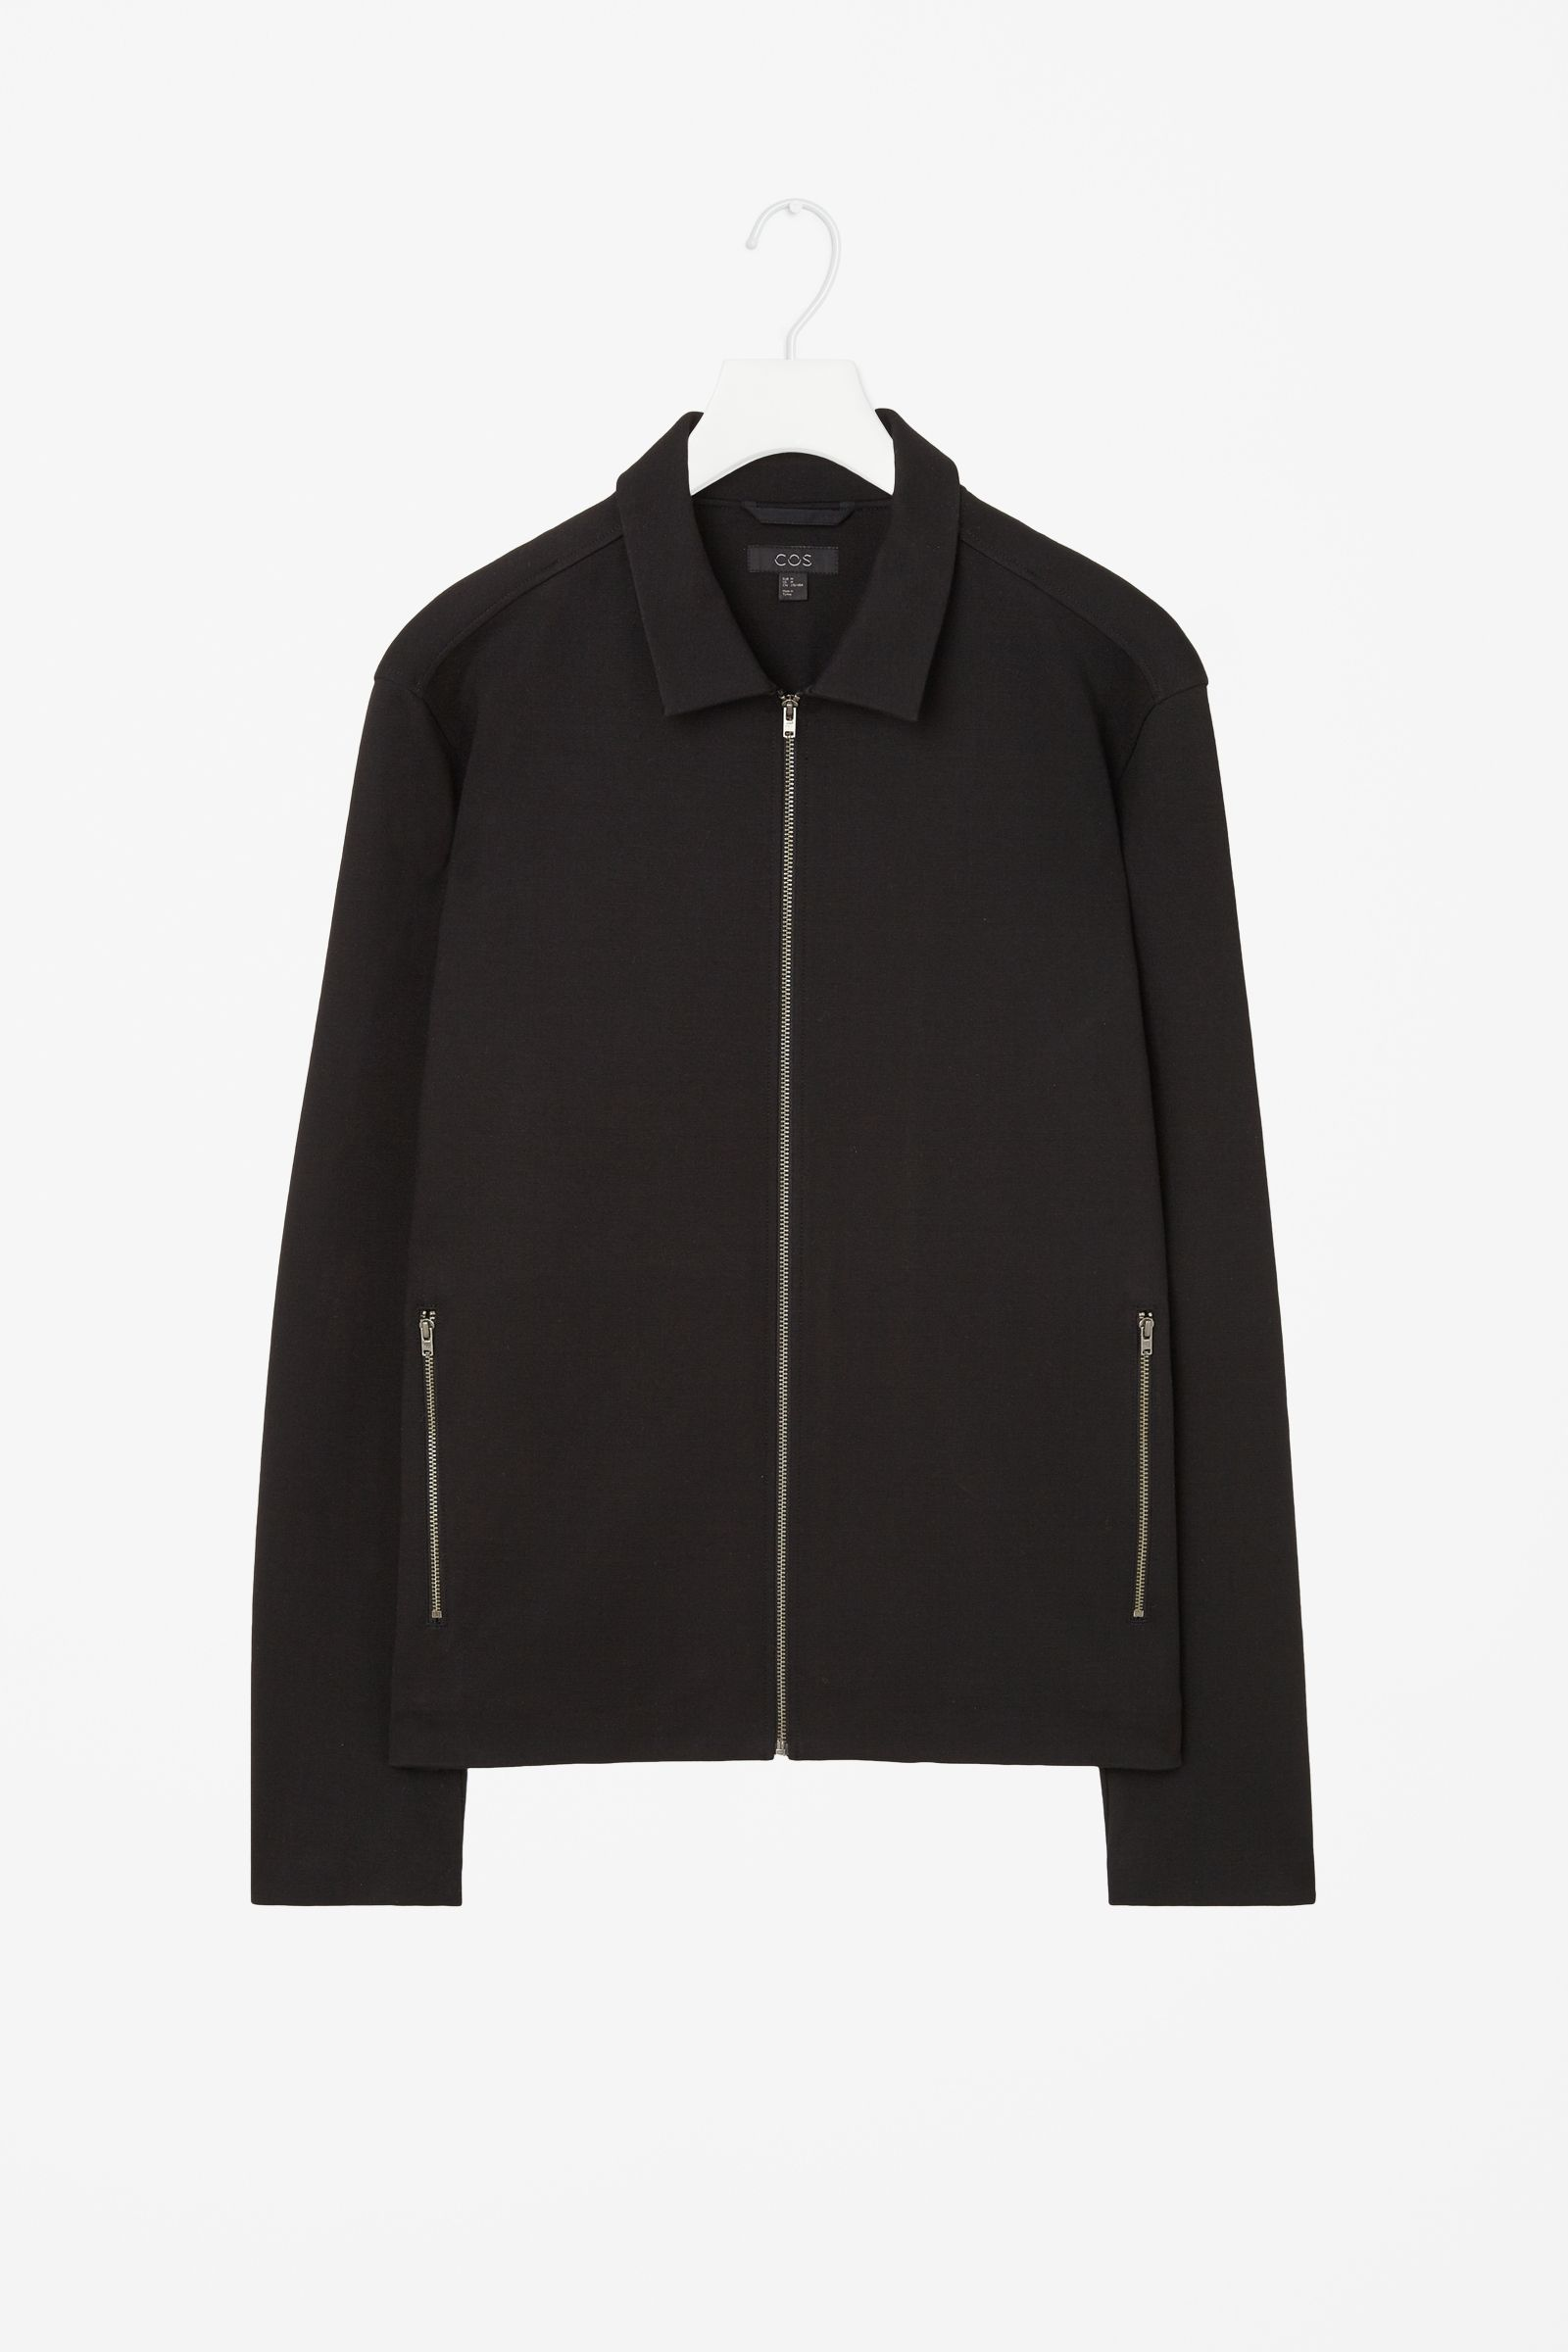 86 Best Jackets images   Jackets, Mens outfits, Menswear